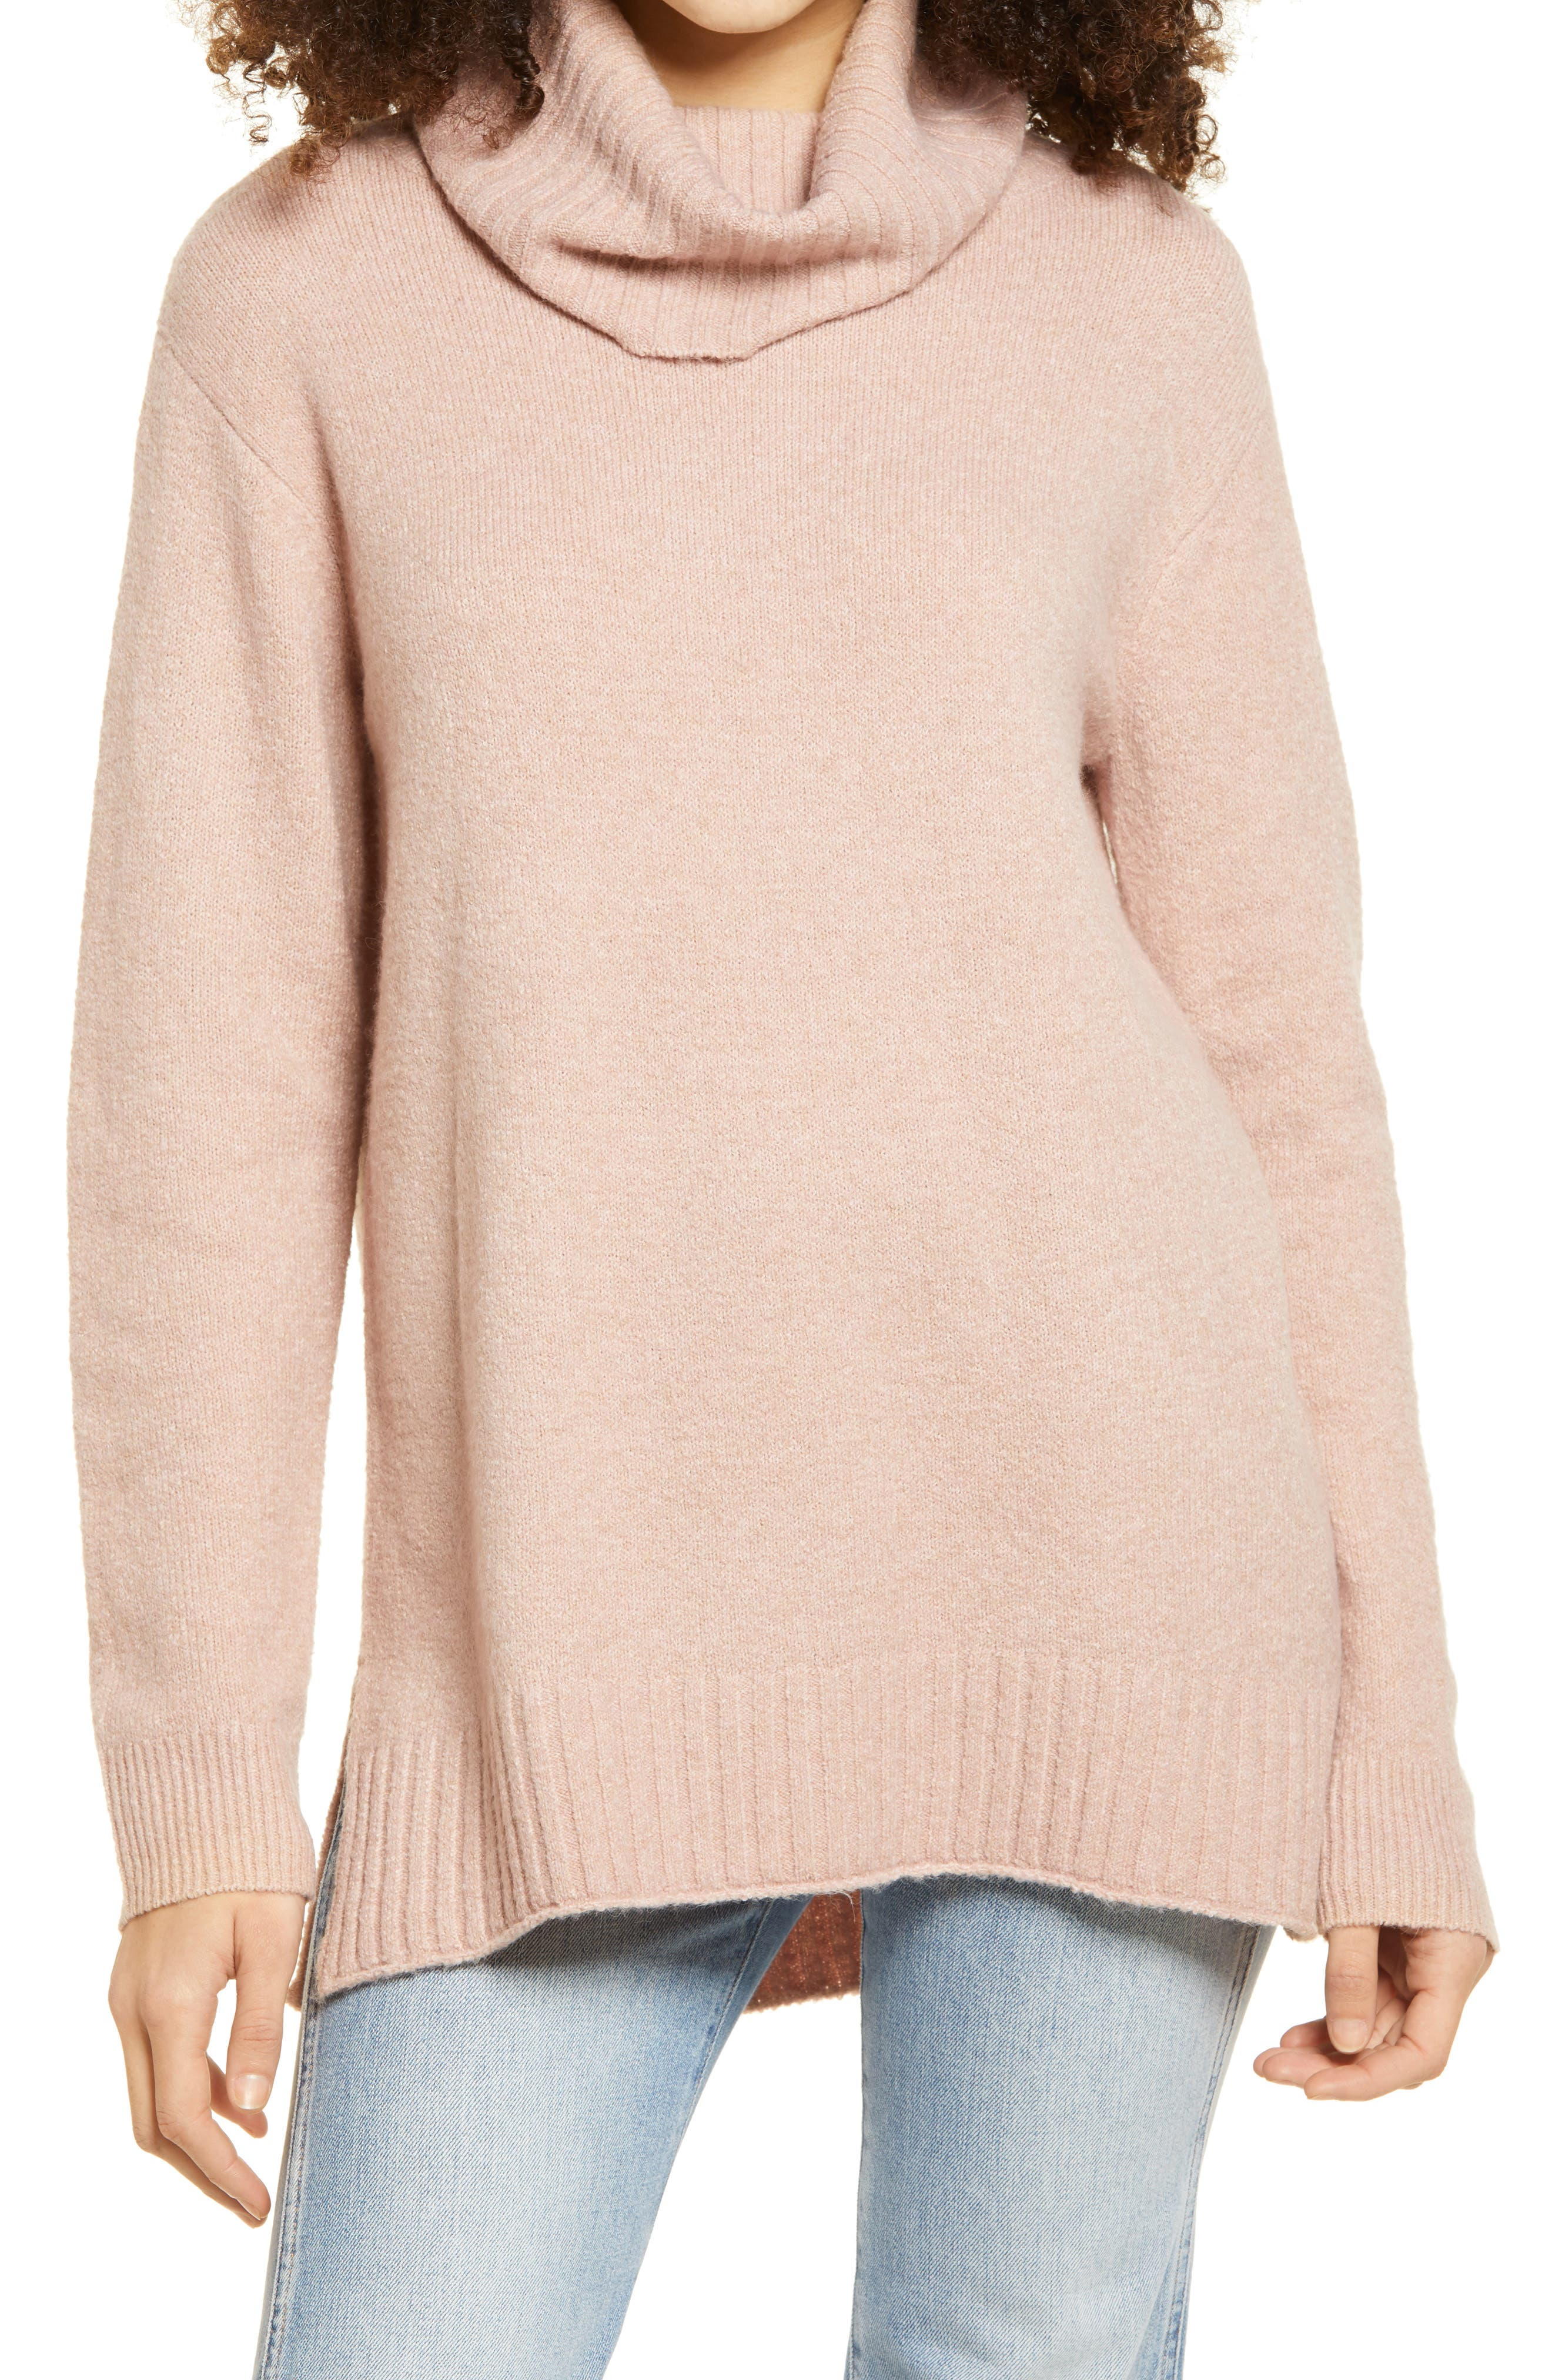 J LINDEBERG Womens Daisy Turtleneck Sweater